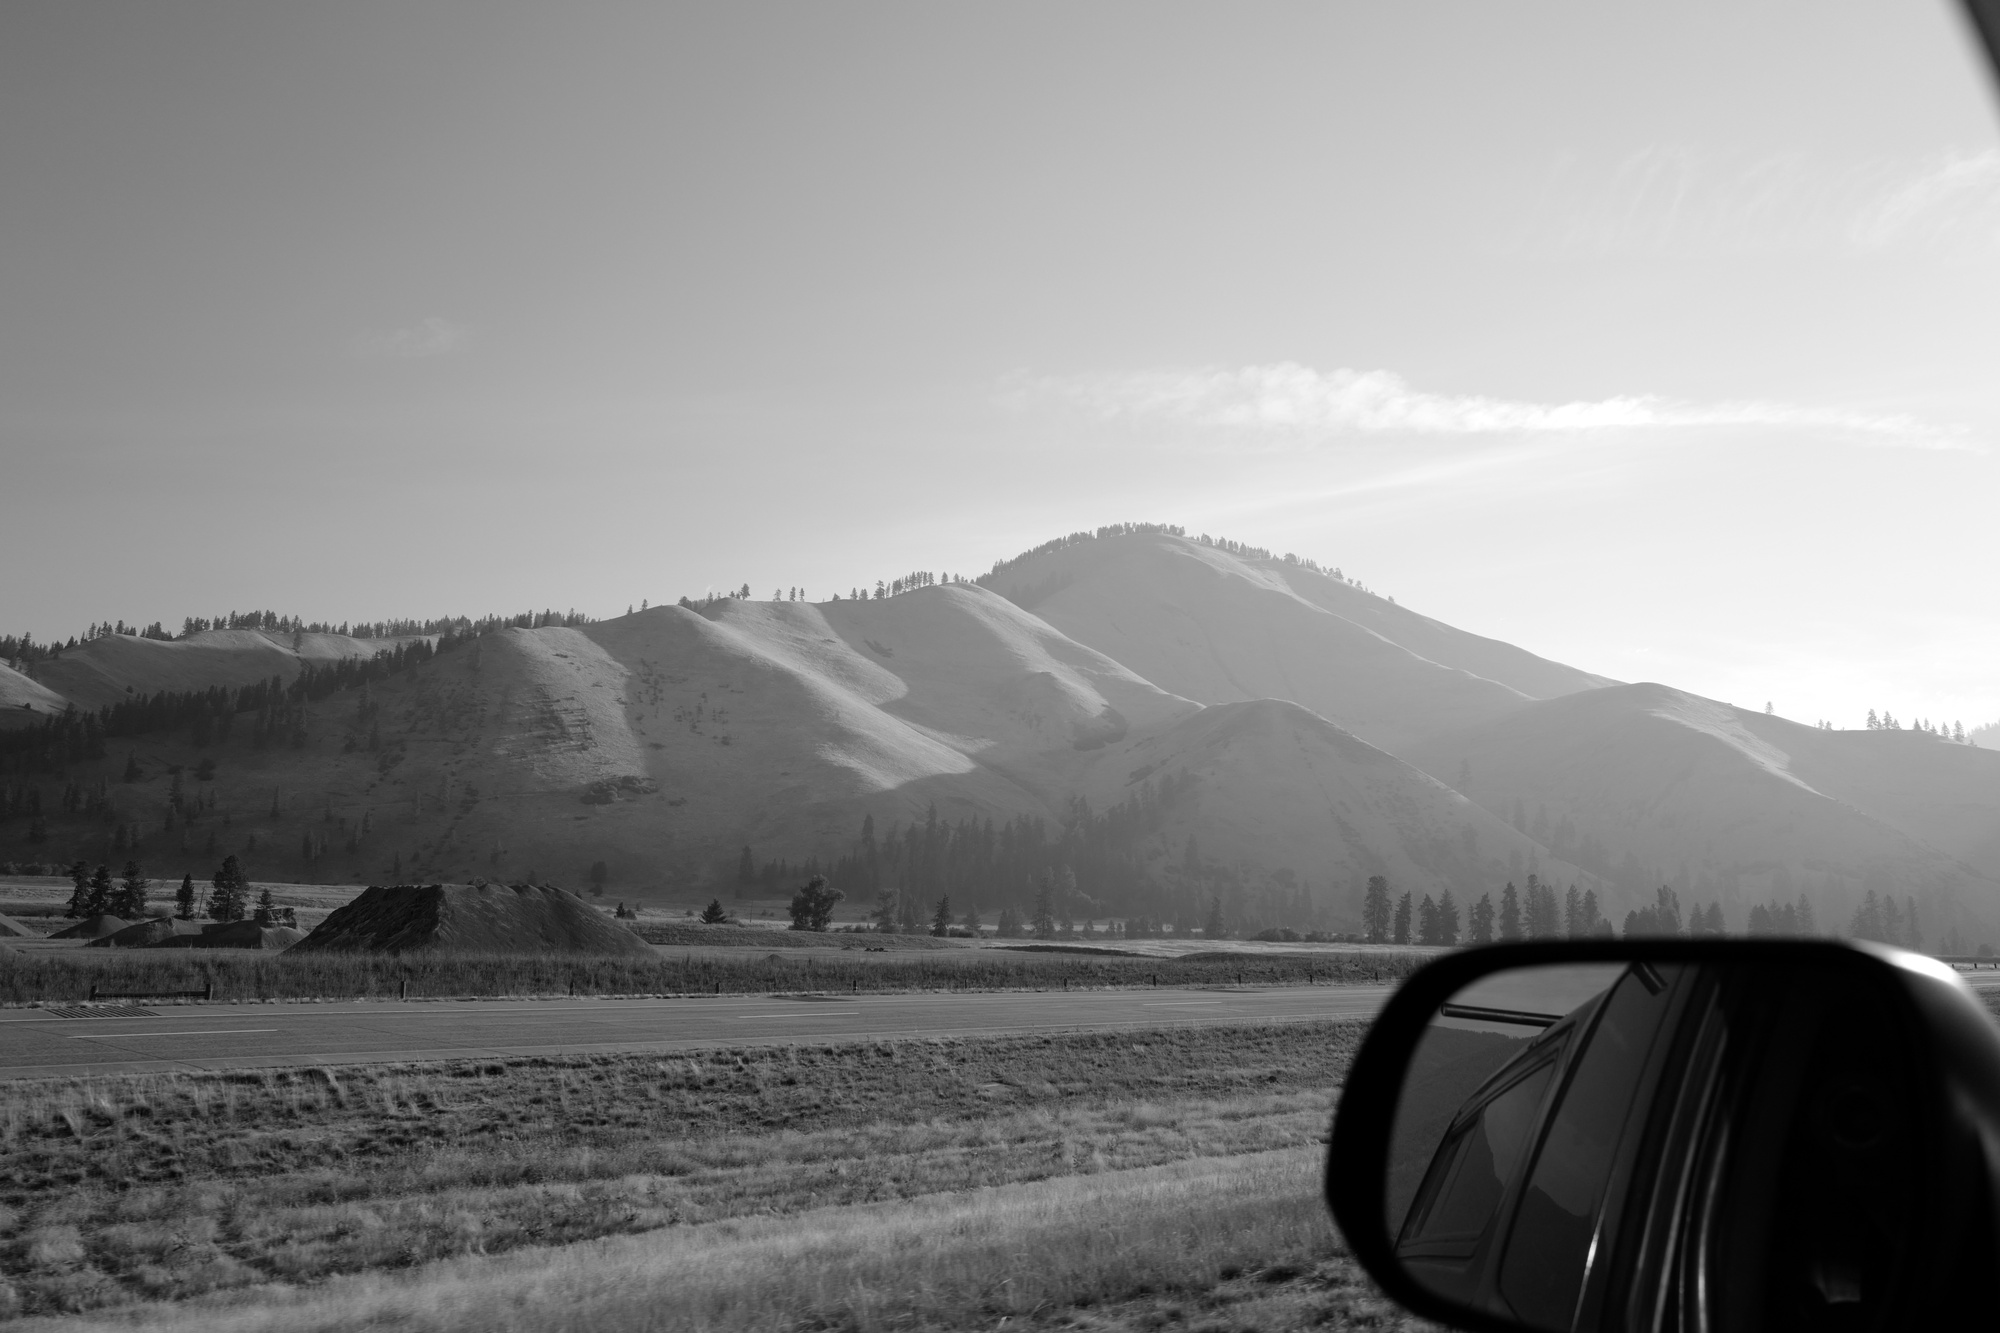 Montana, on the road, b&w